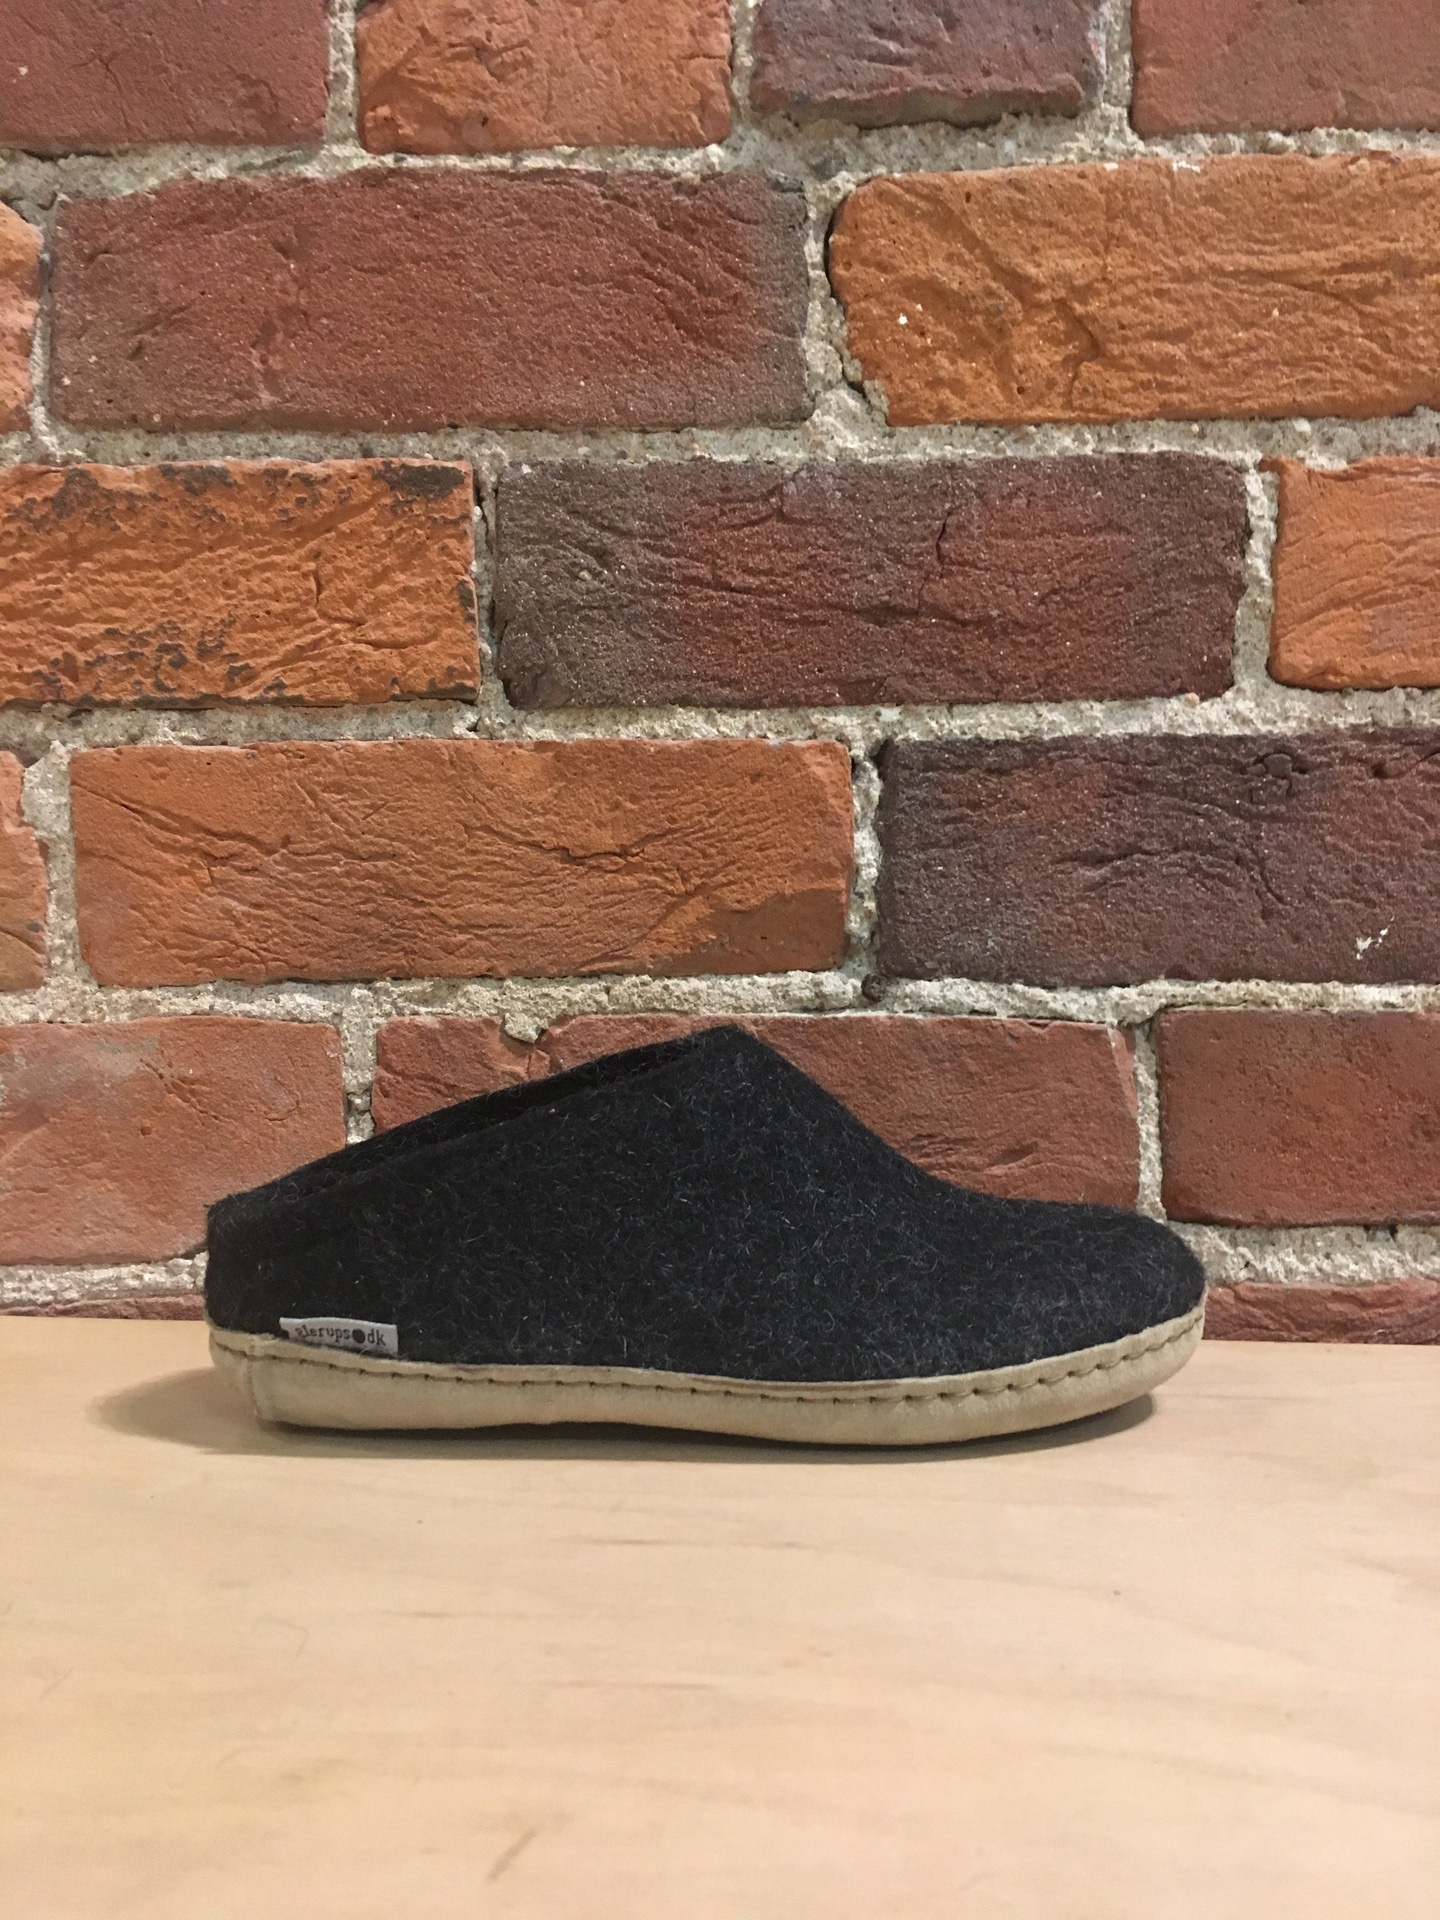 GLERUPS - FELT SLIPPER IN CHARCOAL GREY